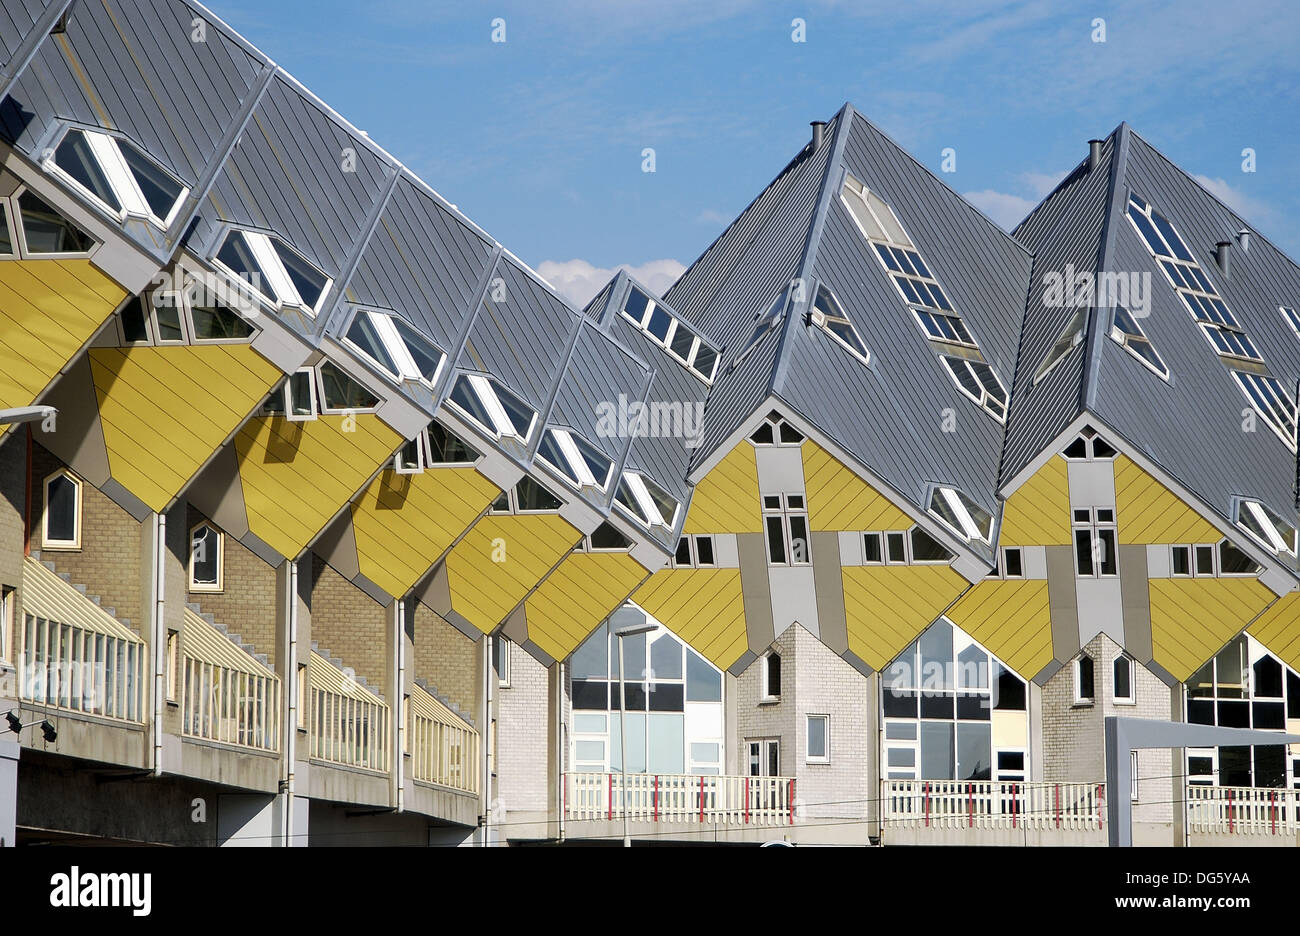 Cubic houses kubuswonig kijk kubus by piet blom rotterdam stock photo royalty free image - The cubic home ...